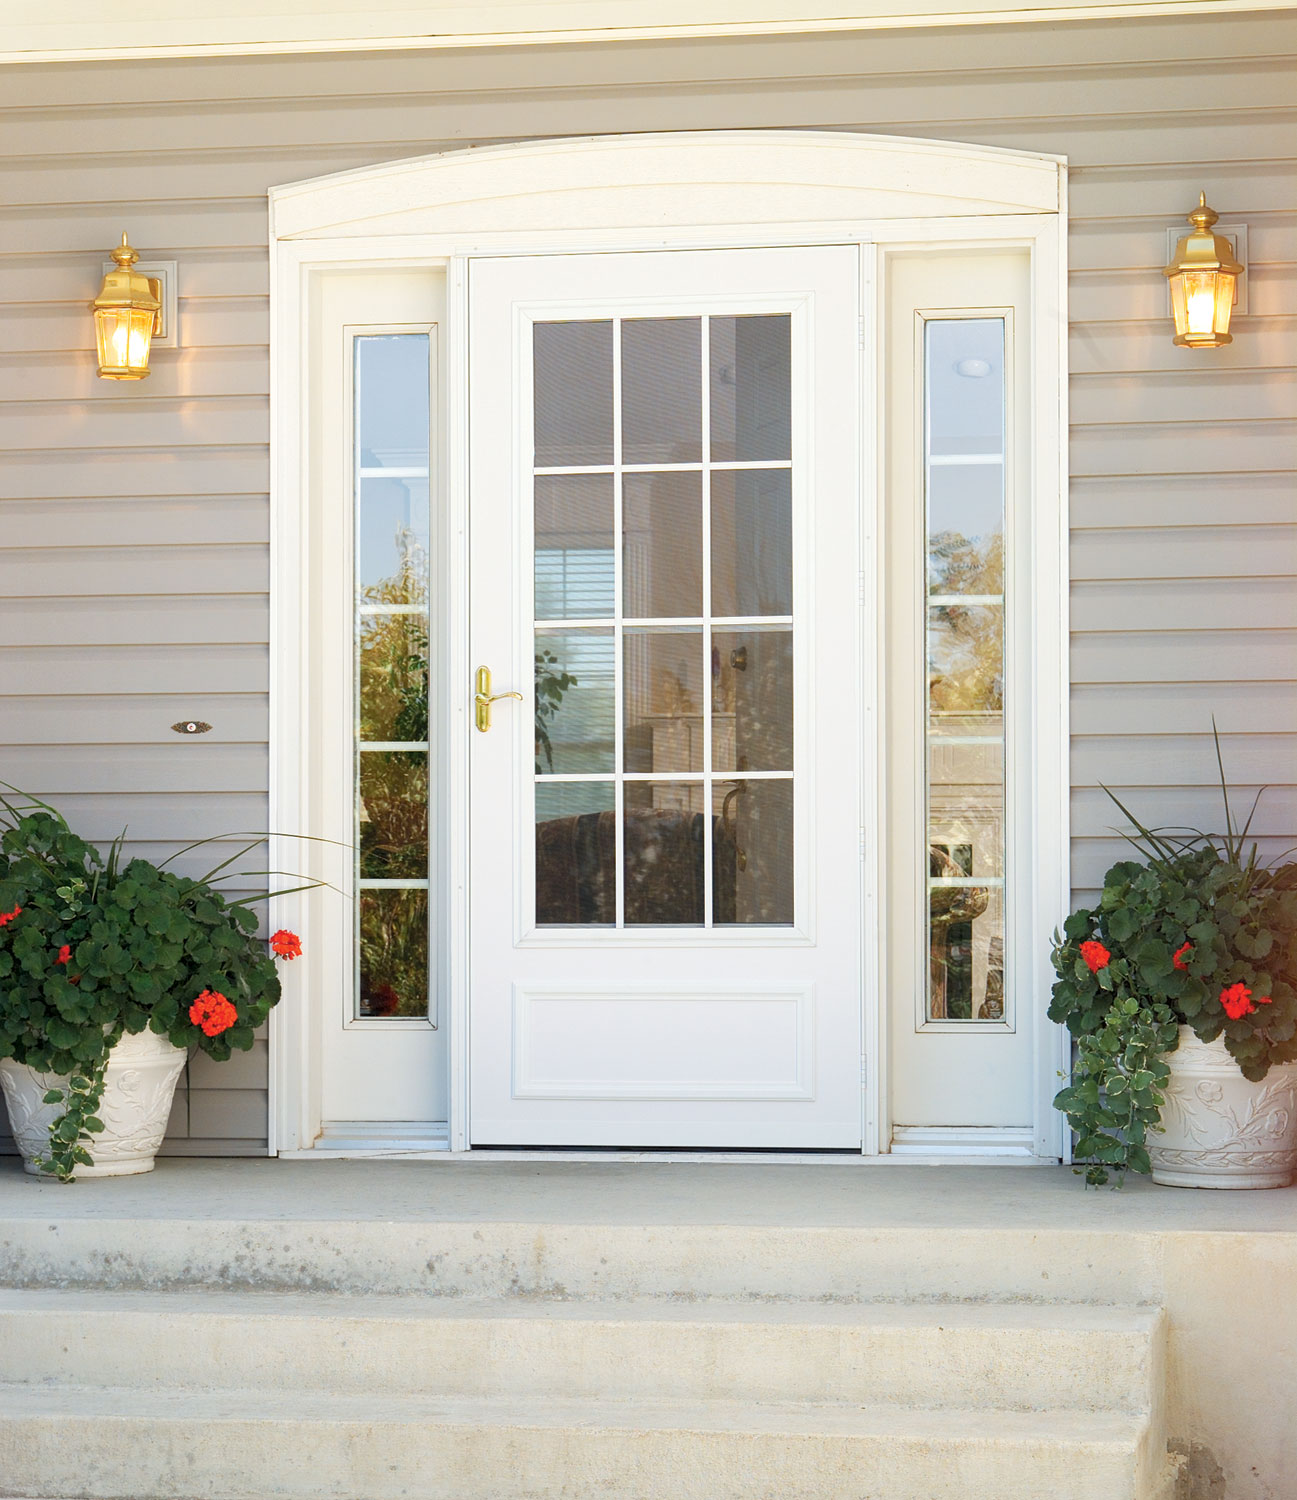 Storm Doors Roscoe IL Kobyco Replacement Windows Interior And Exterior D